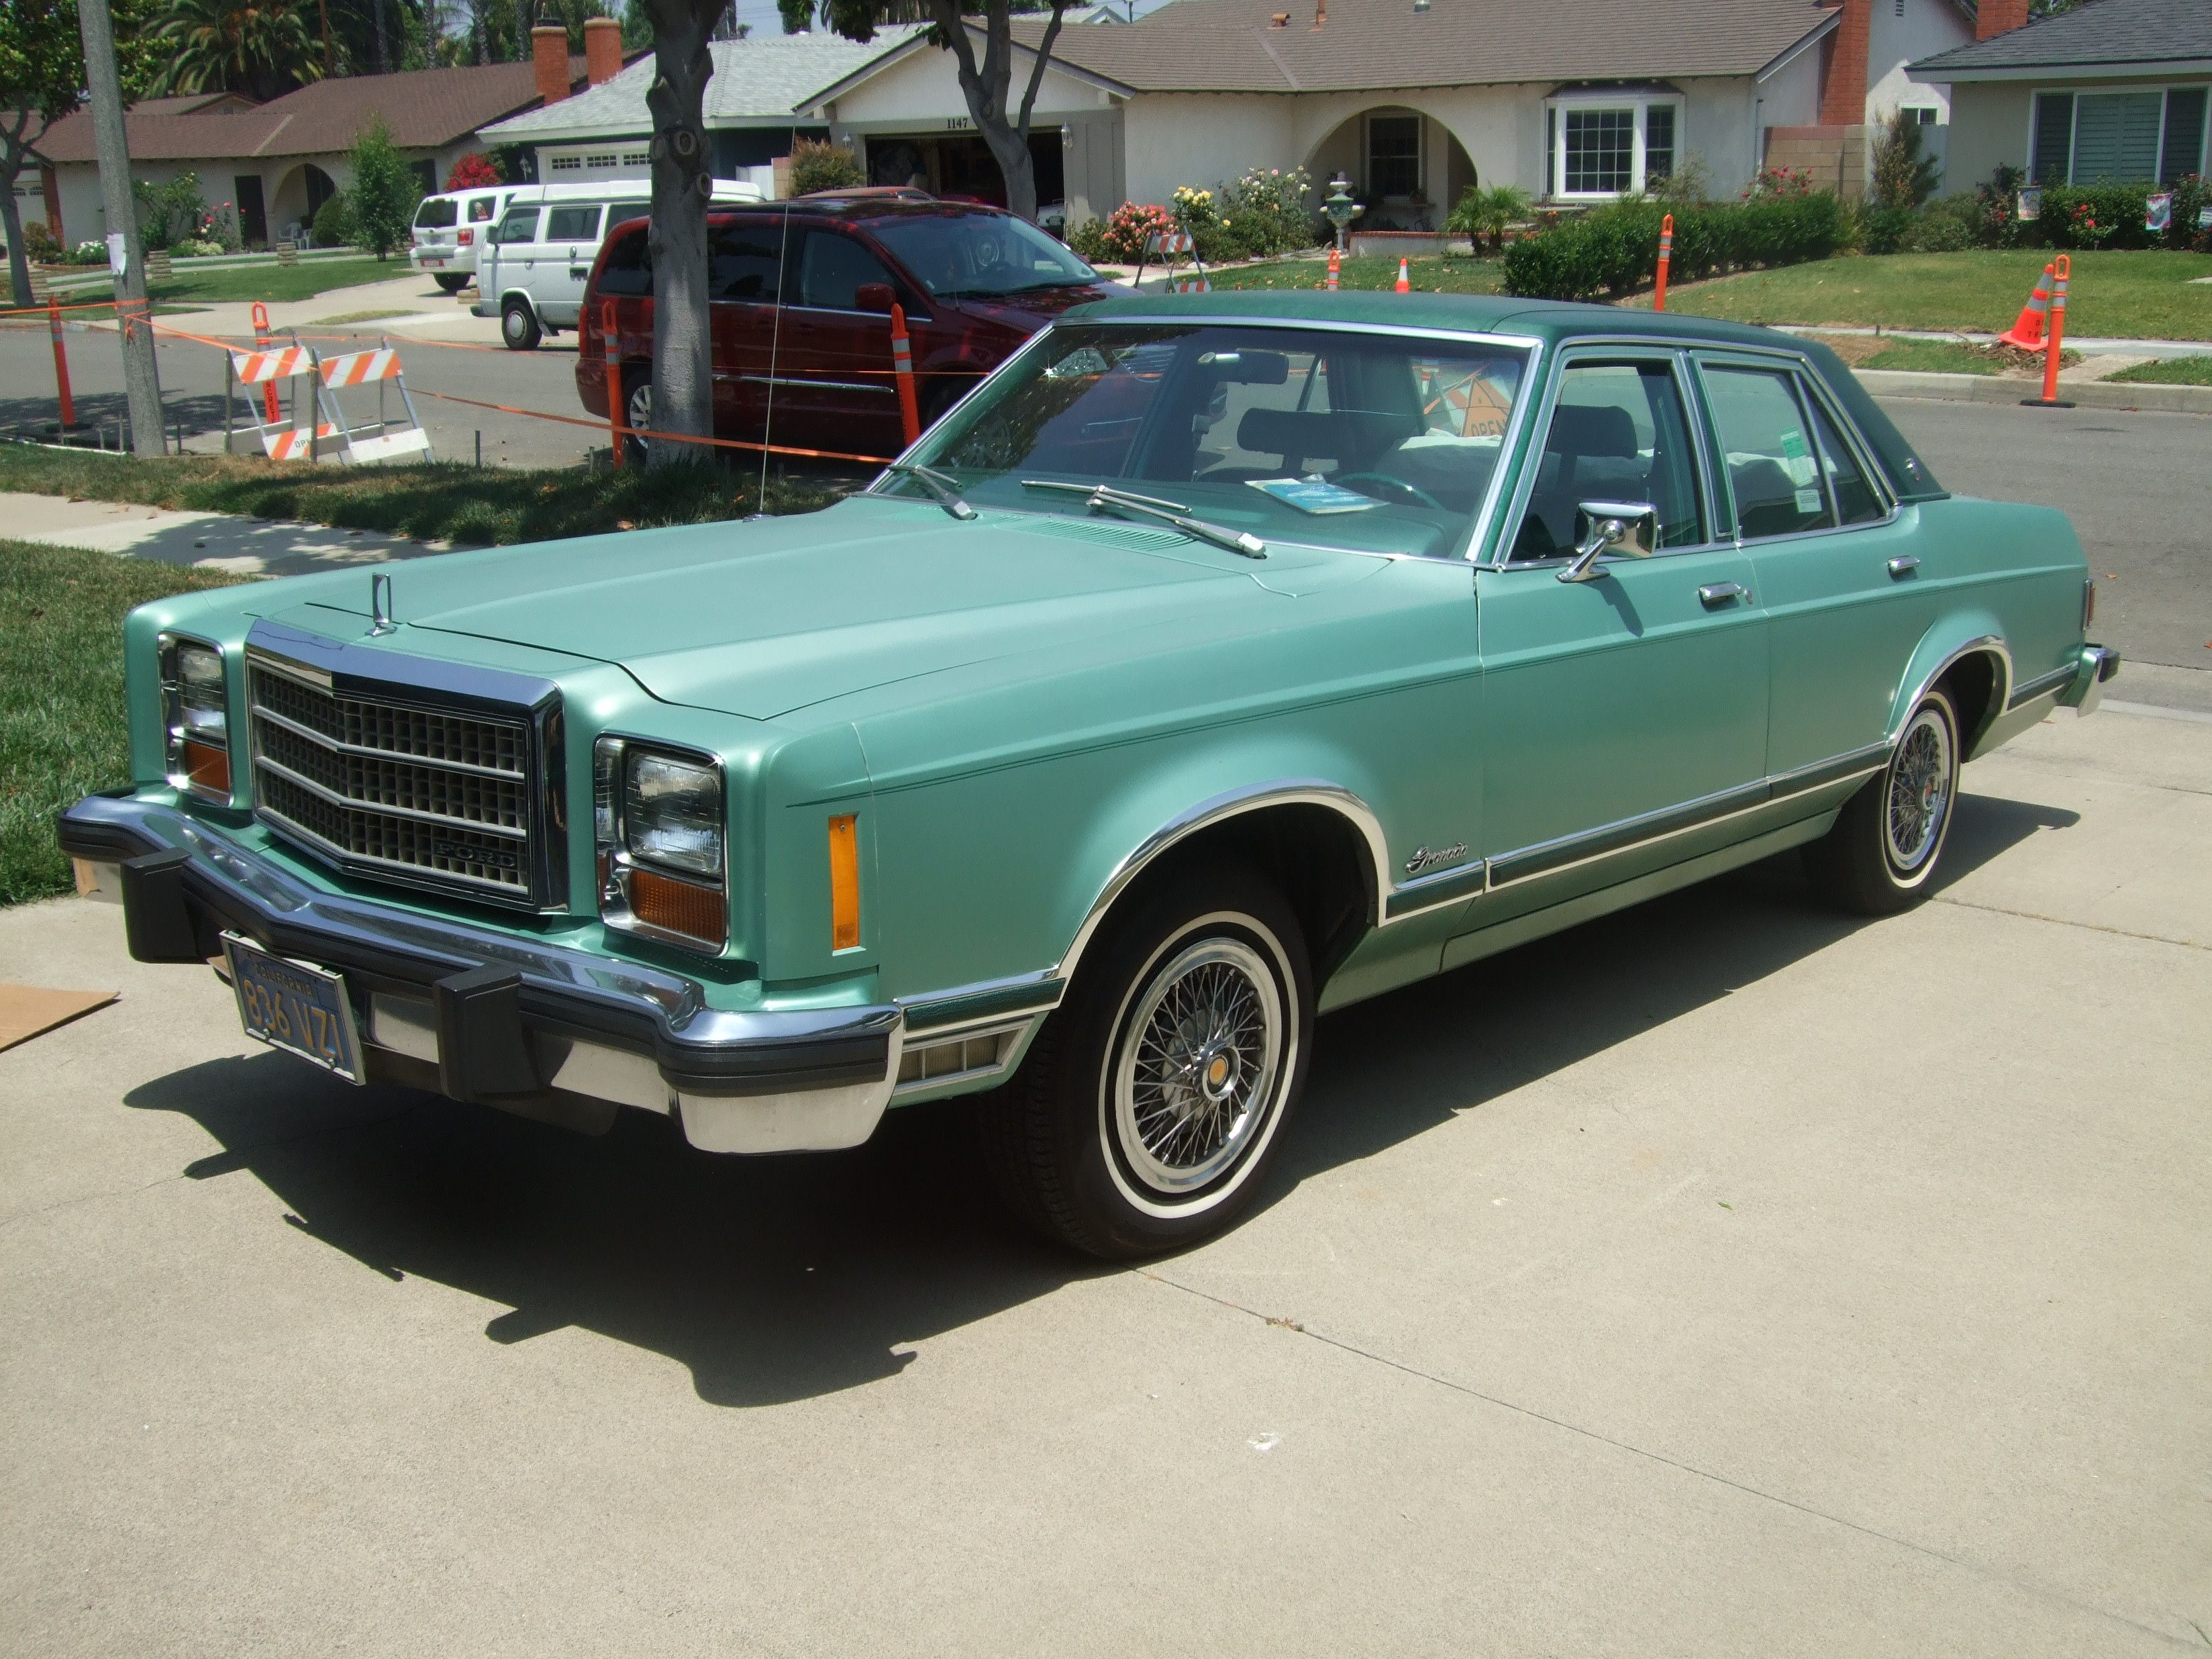 1978 ford granada four door sedan my first car in this shade of green